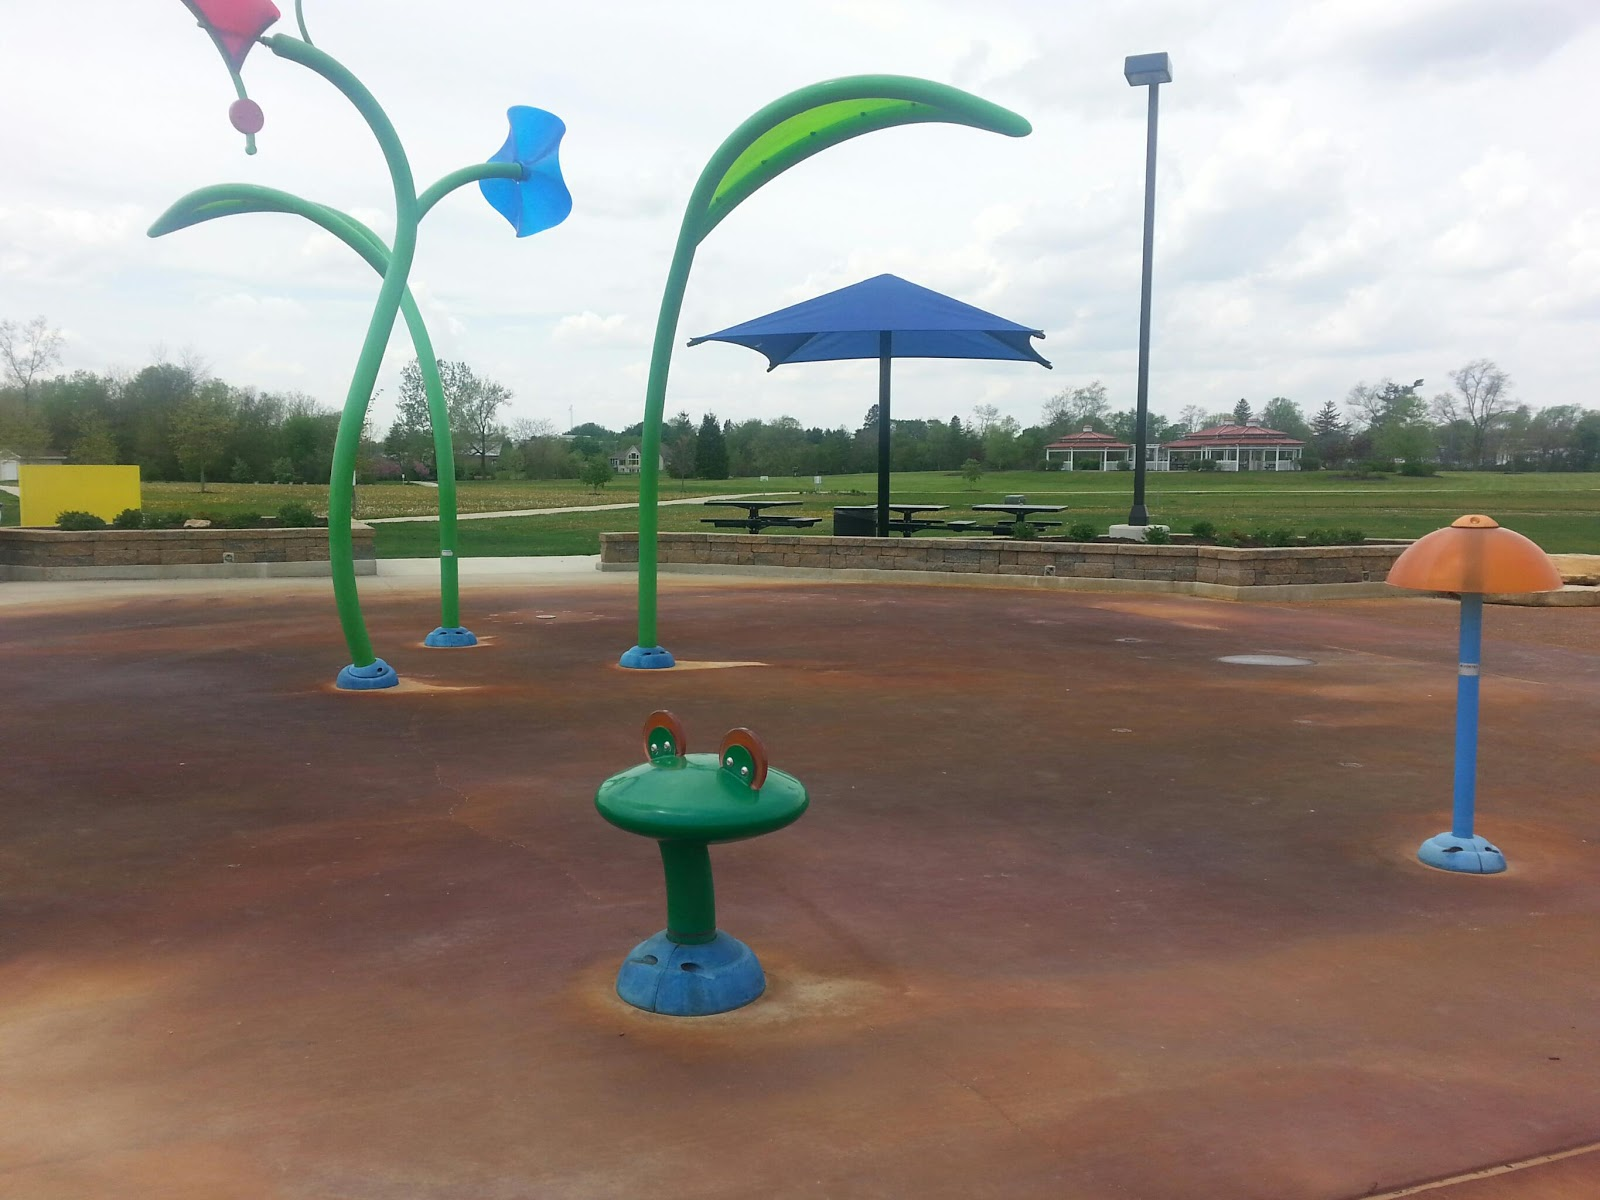 It S Bring Your Own Horseshoes But There A Beautiful Park All Ready And Set Up For At Riverside Gardens In Leo Cedarville Indiana